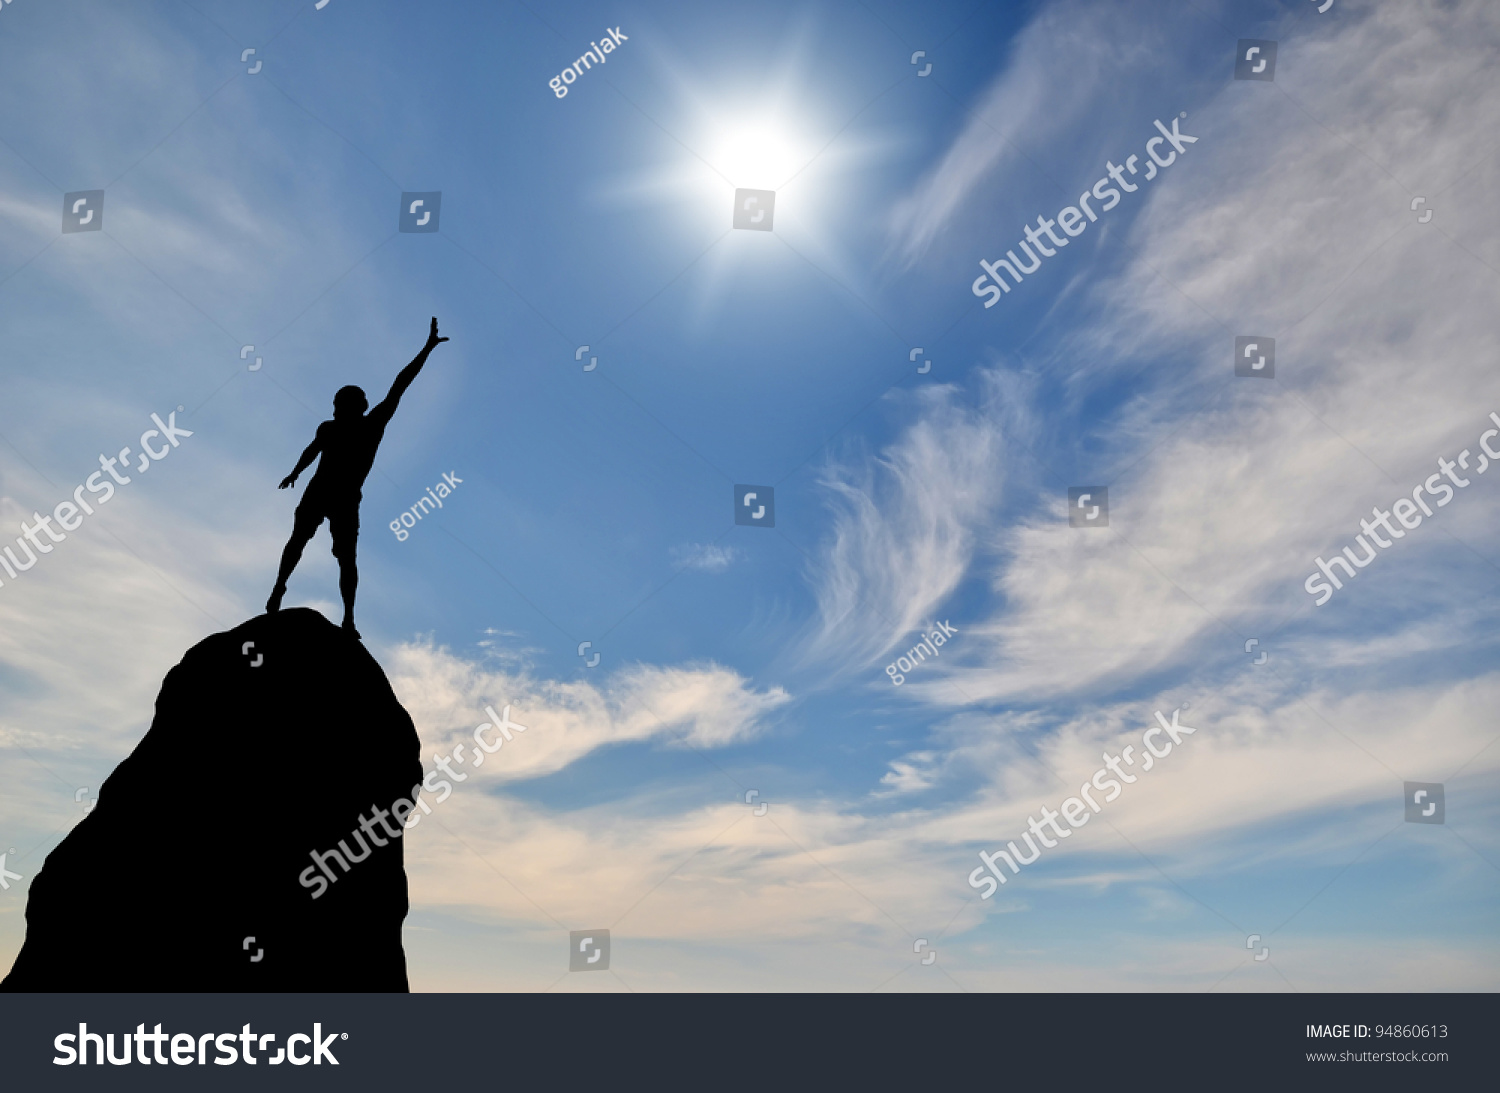 pic stock photo man on top of the mountain looking to the sun.